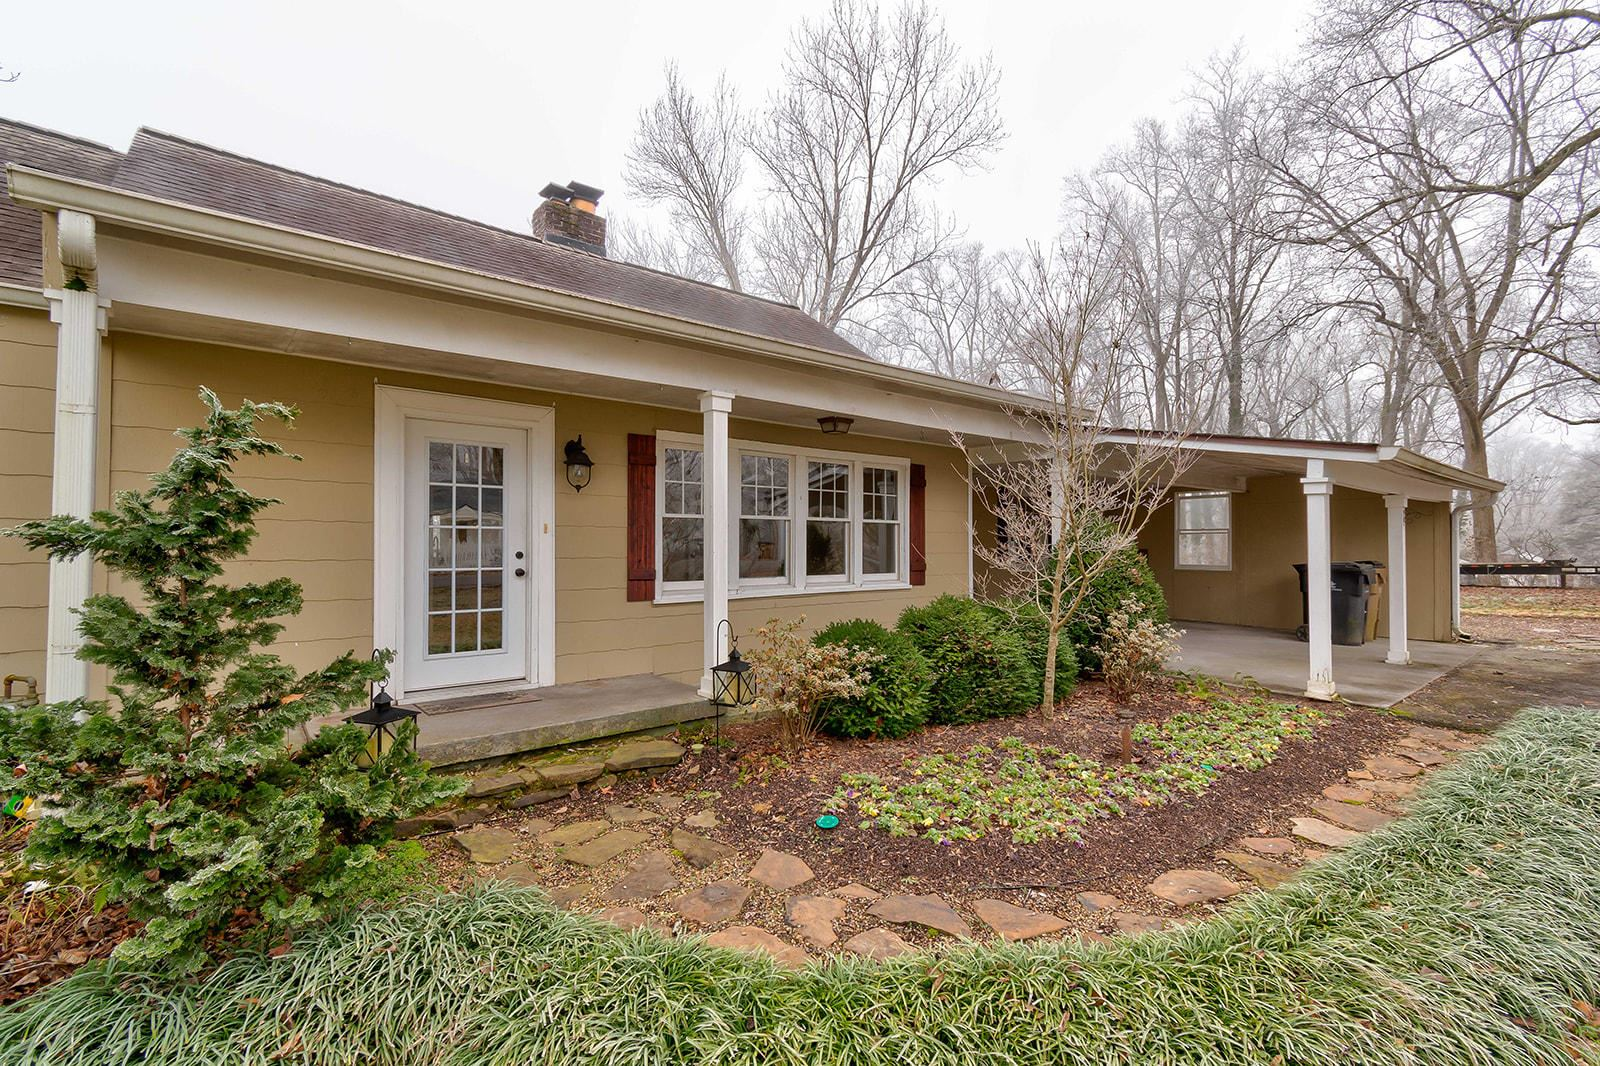 Photo of 202 Mayflower Drive, Knoxville, TN 37920 (MLS # 1140181)